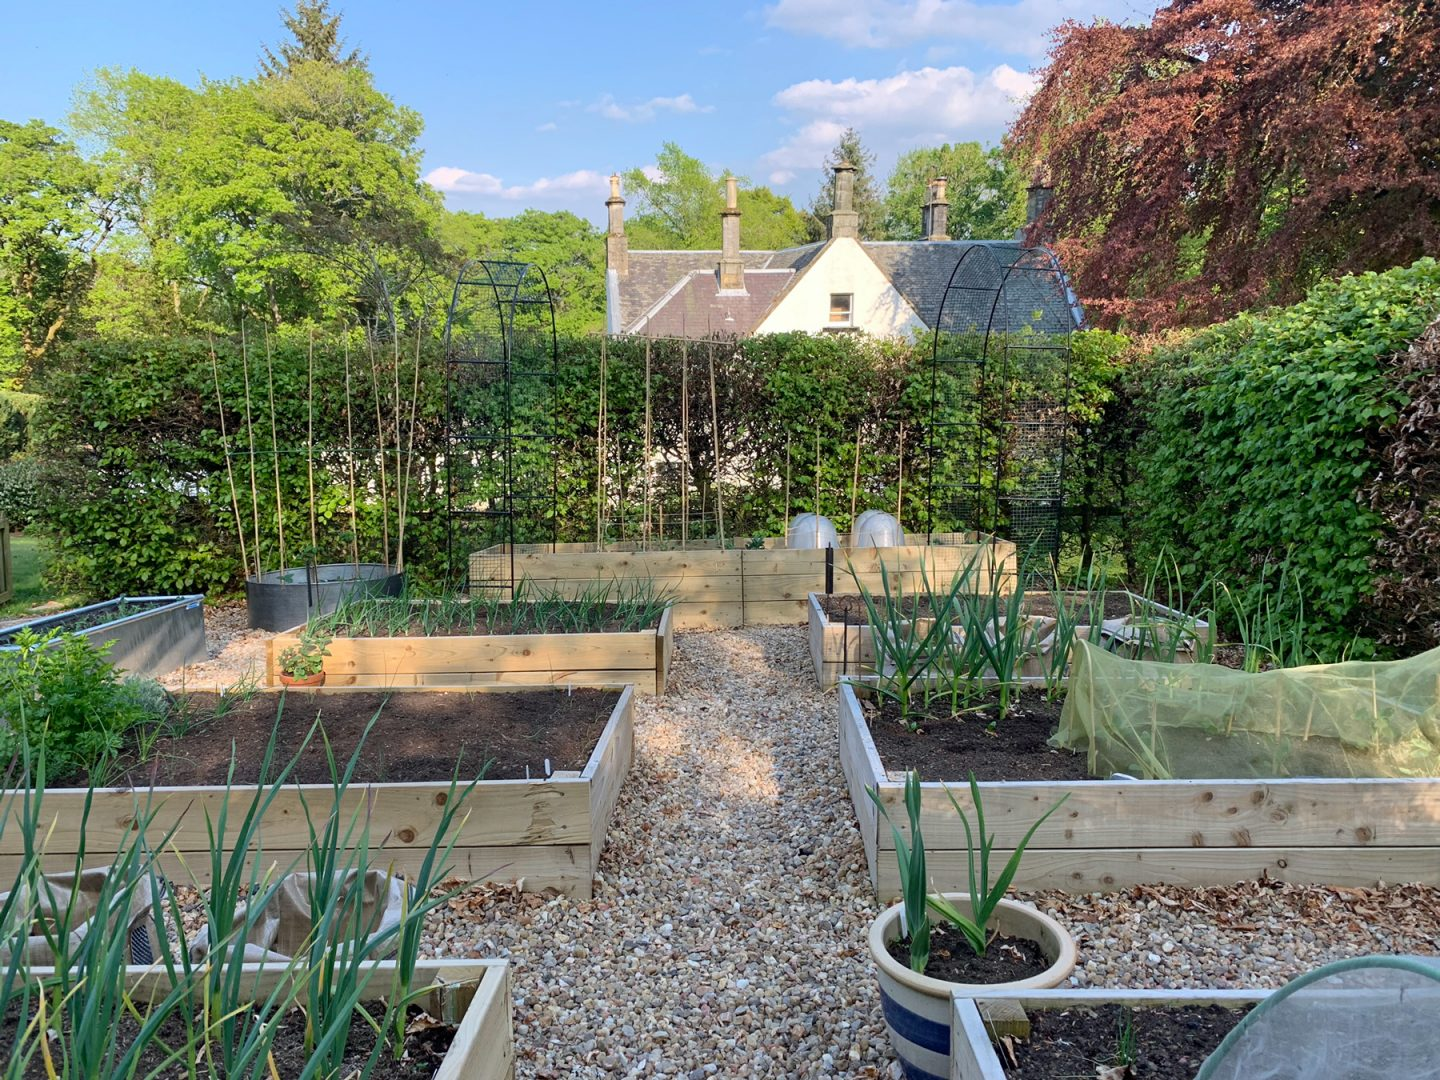 Scottish Vegetable Garden